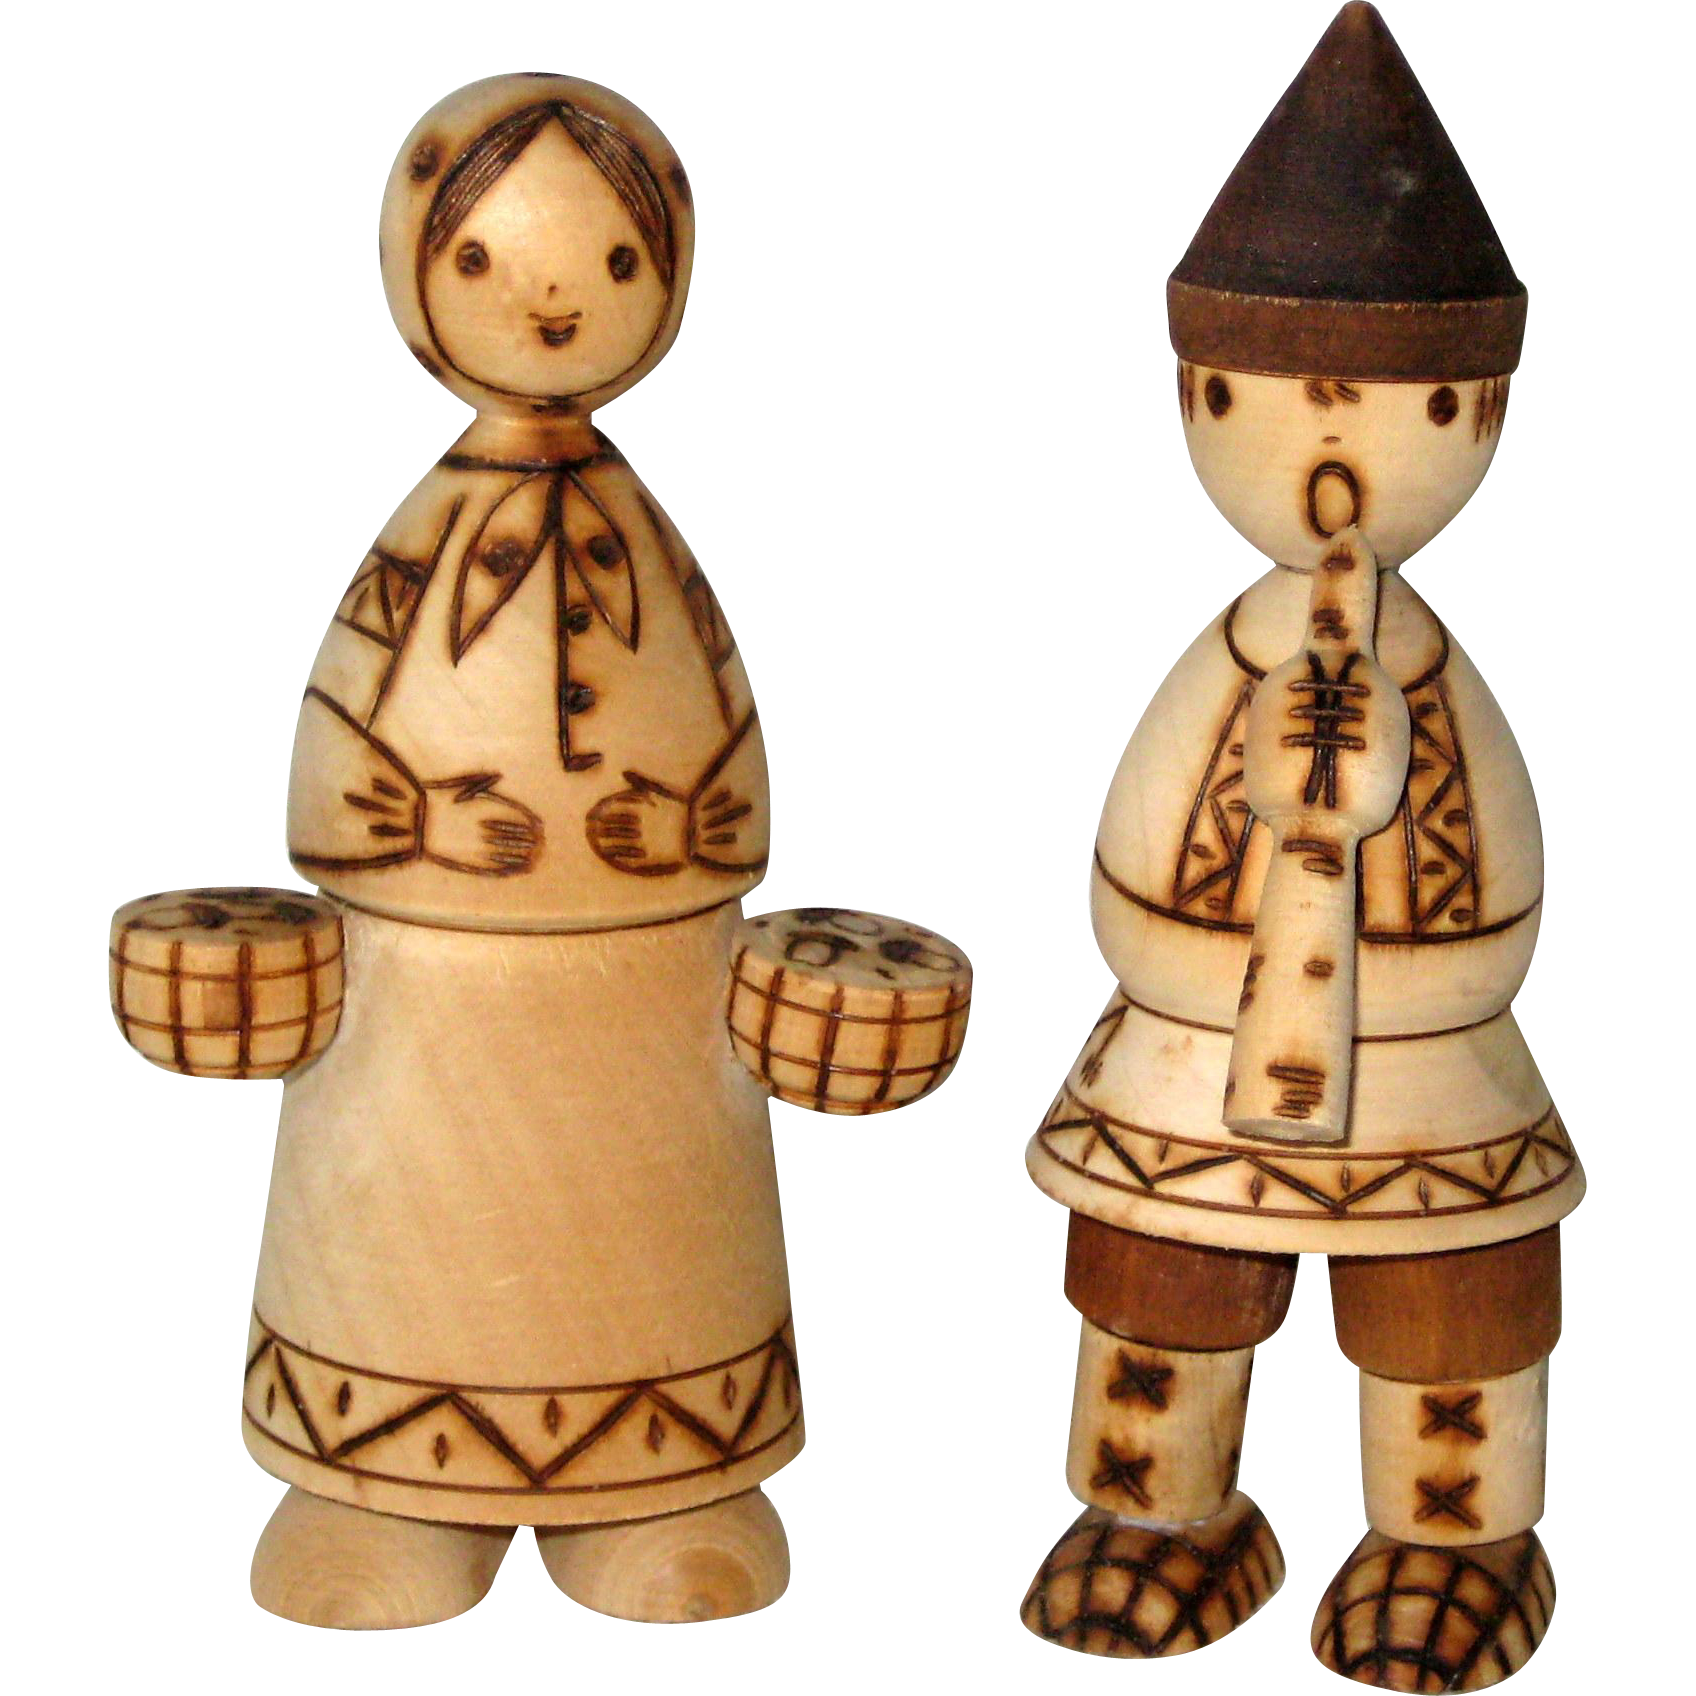 Pair of Birch Wood Traditional Figures from Russia - 1978